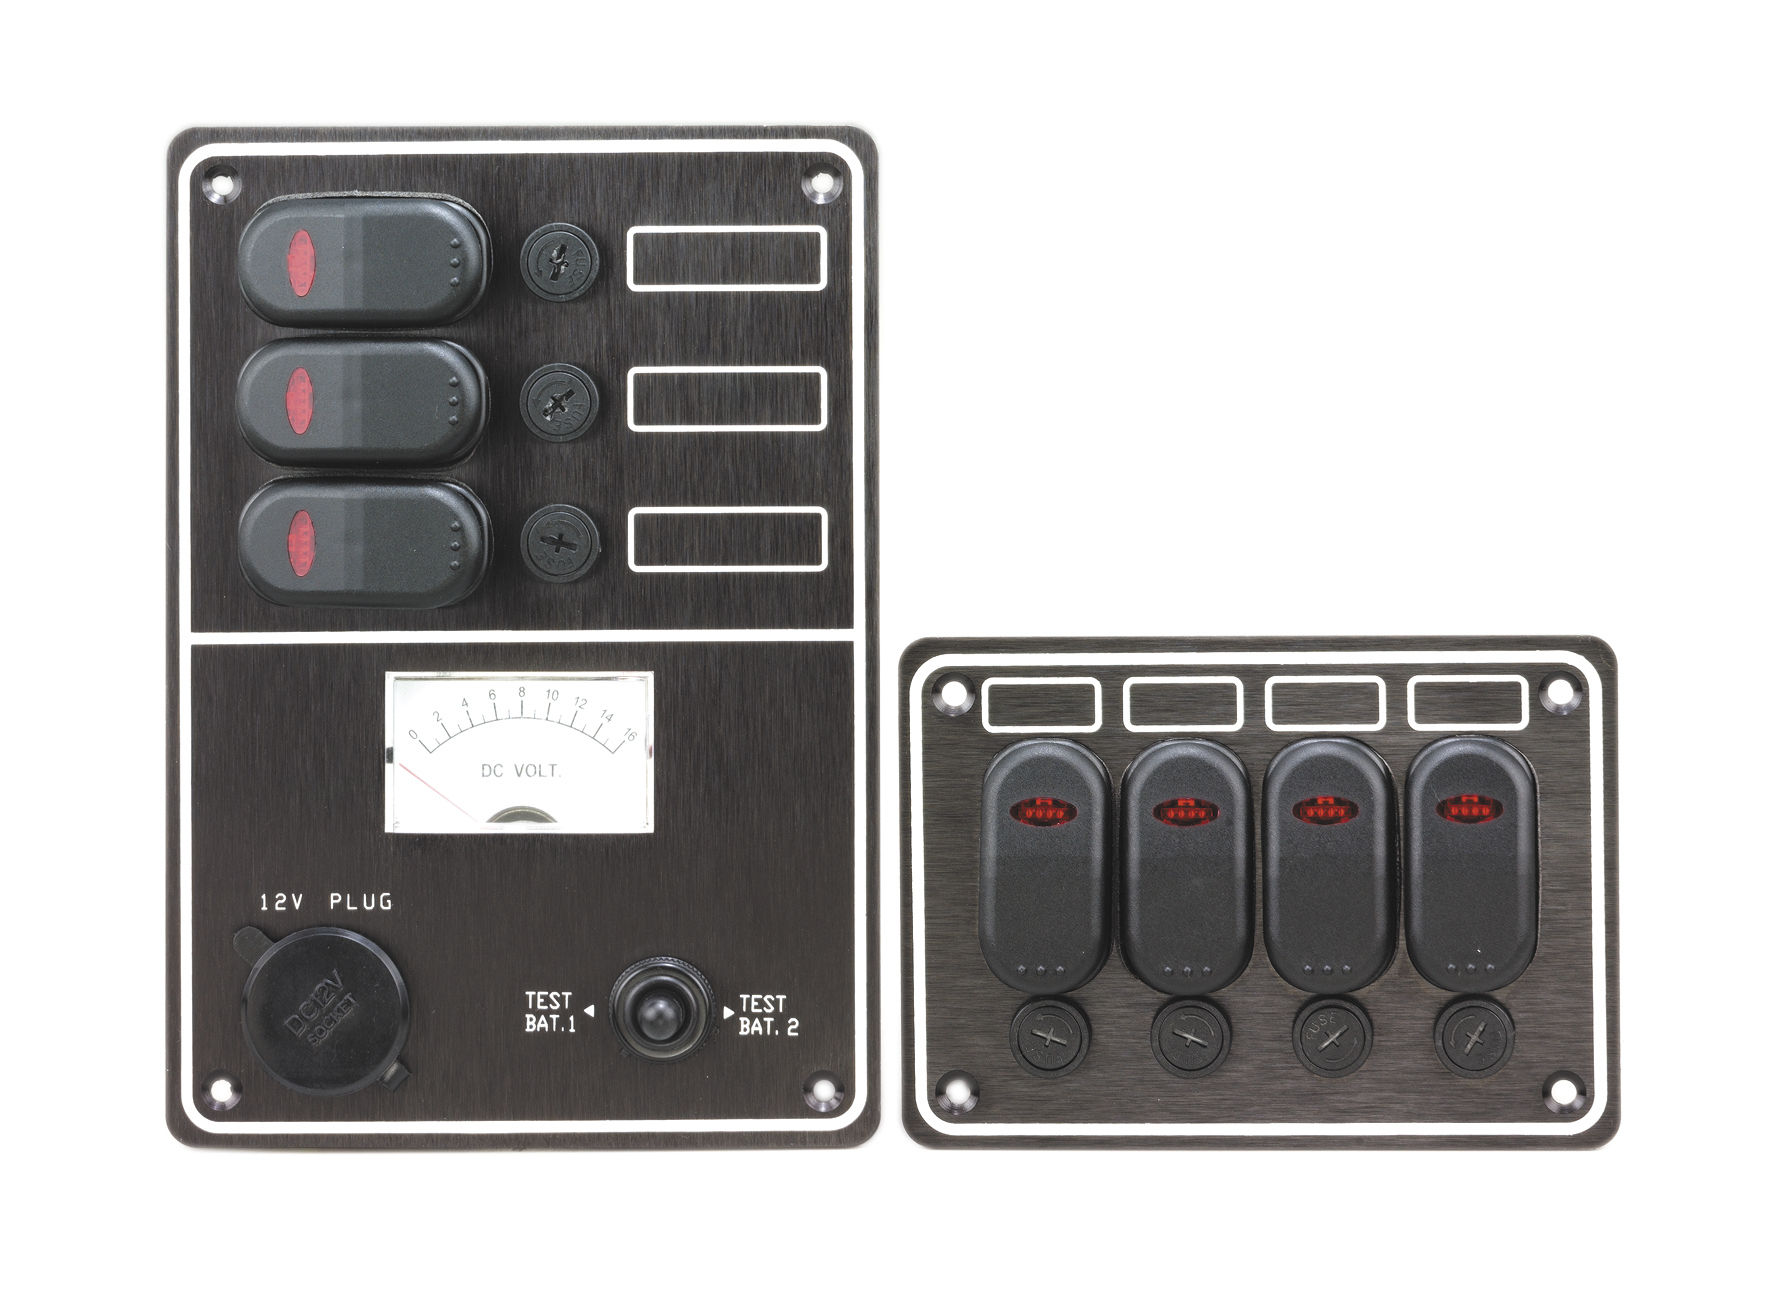 boat control panel / electrical circuit / with waterproof fuse holder -  10036-bk & 10047-bk